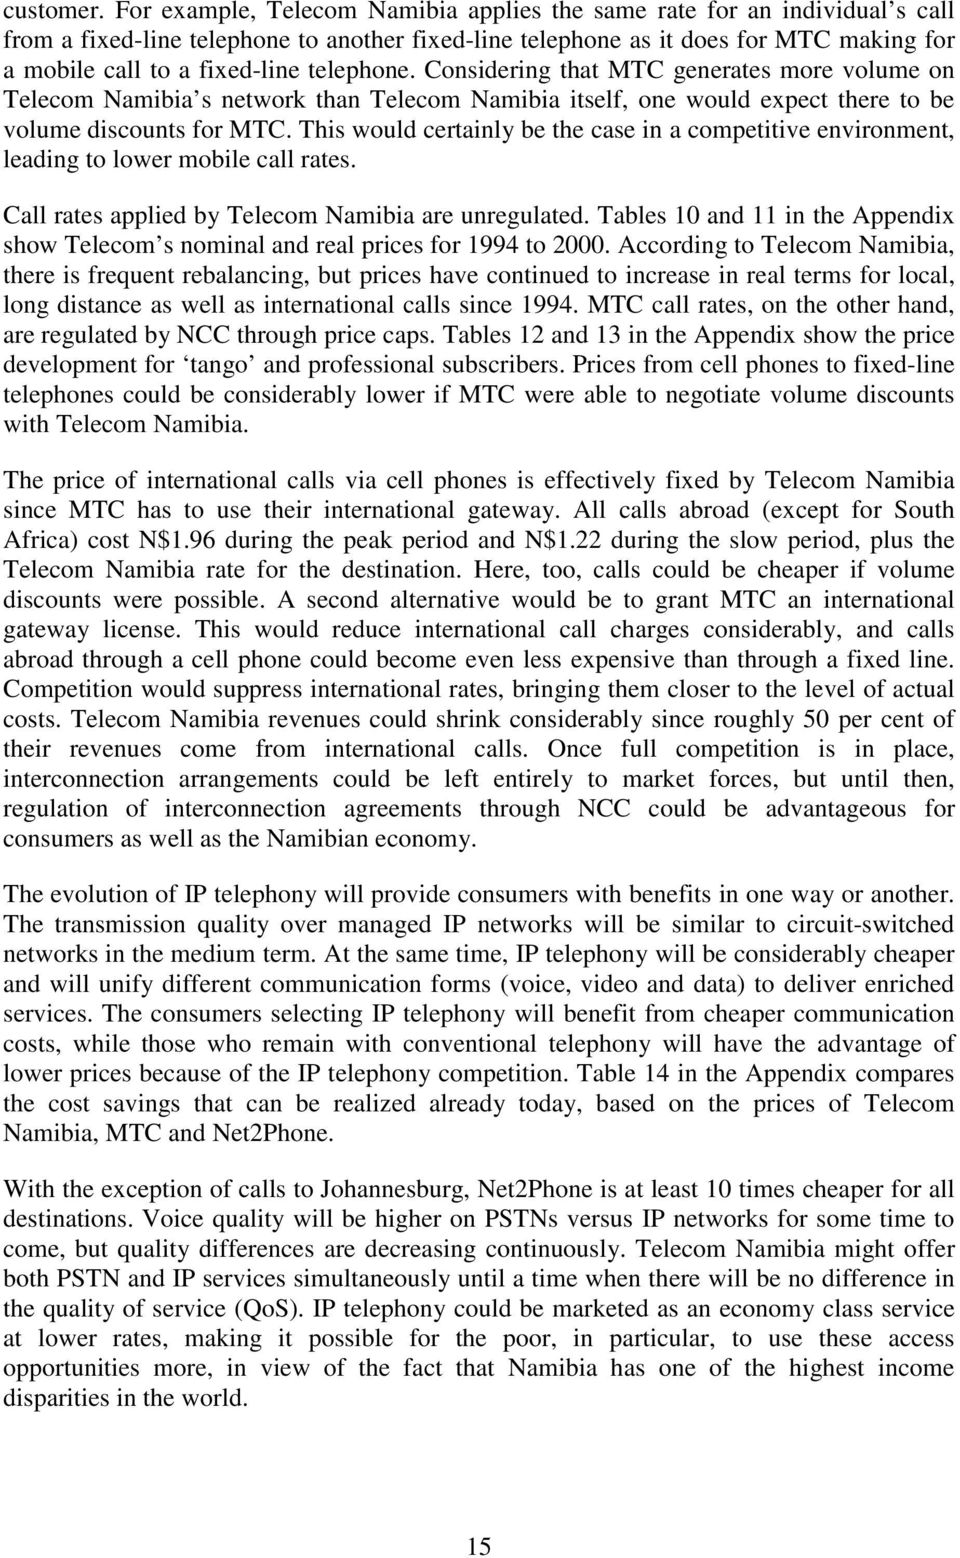 telephone. Considering that MTC generates more volume on Telecom Namibia s network than Telecom Namibia itself, one would expect there to be volume discounts for MTC.